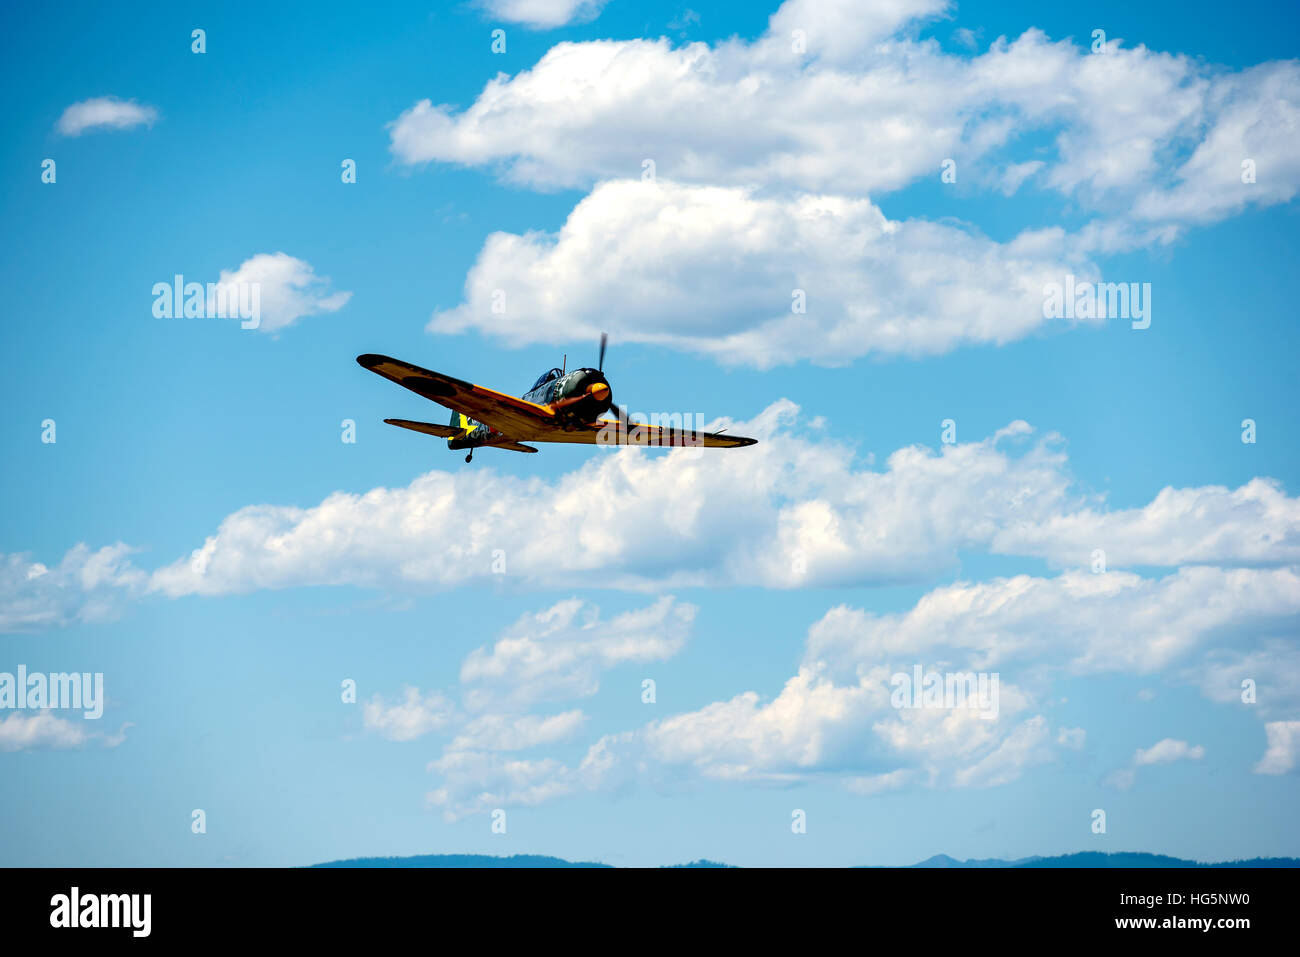 NAKAJIMA KI-43 OSCAR flying, front and bottom view, blue sky and white puffy clouds Stock Photo